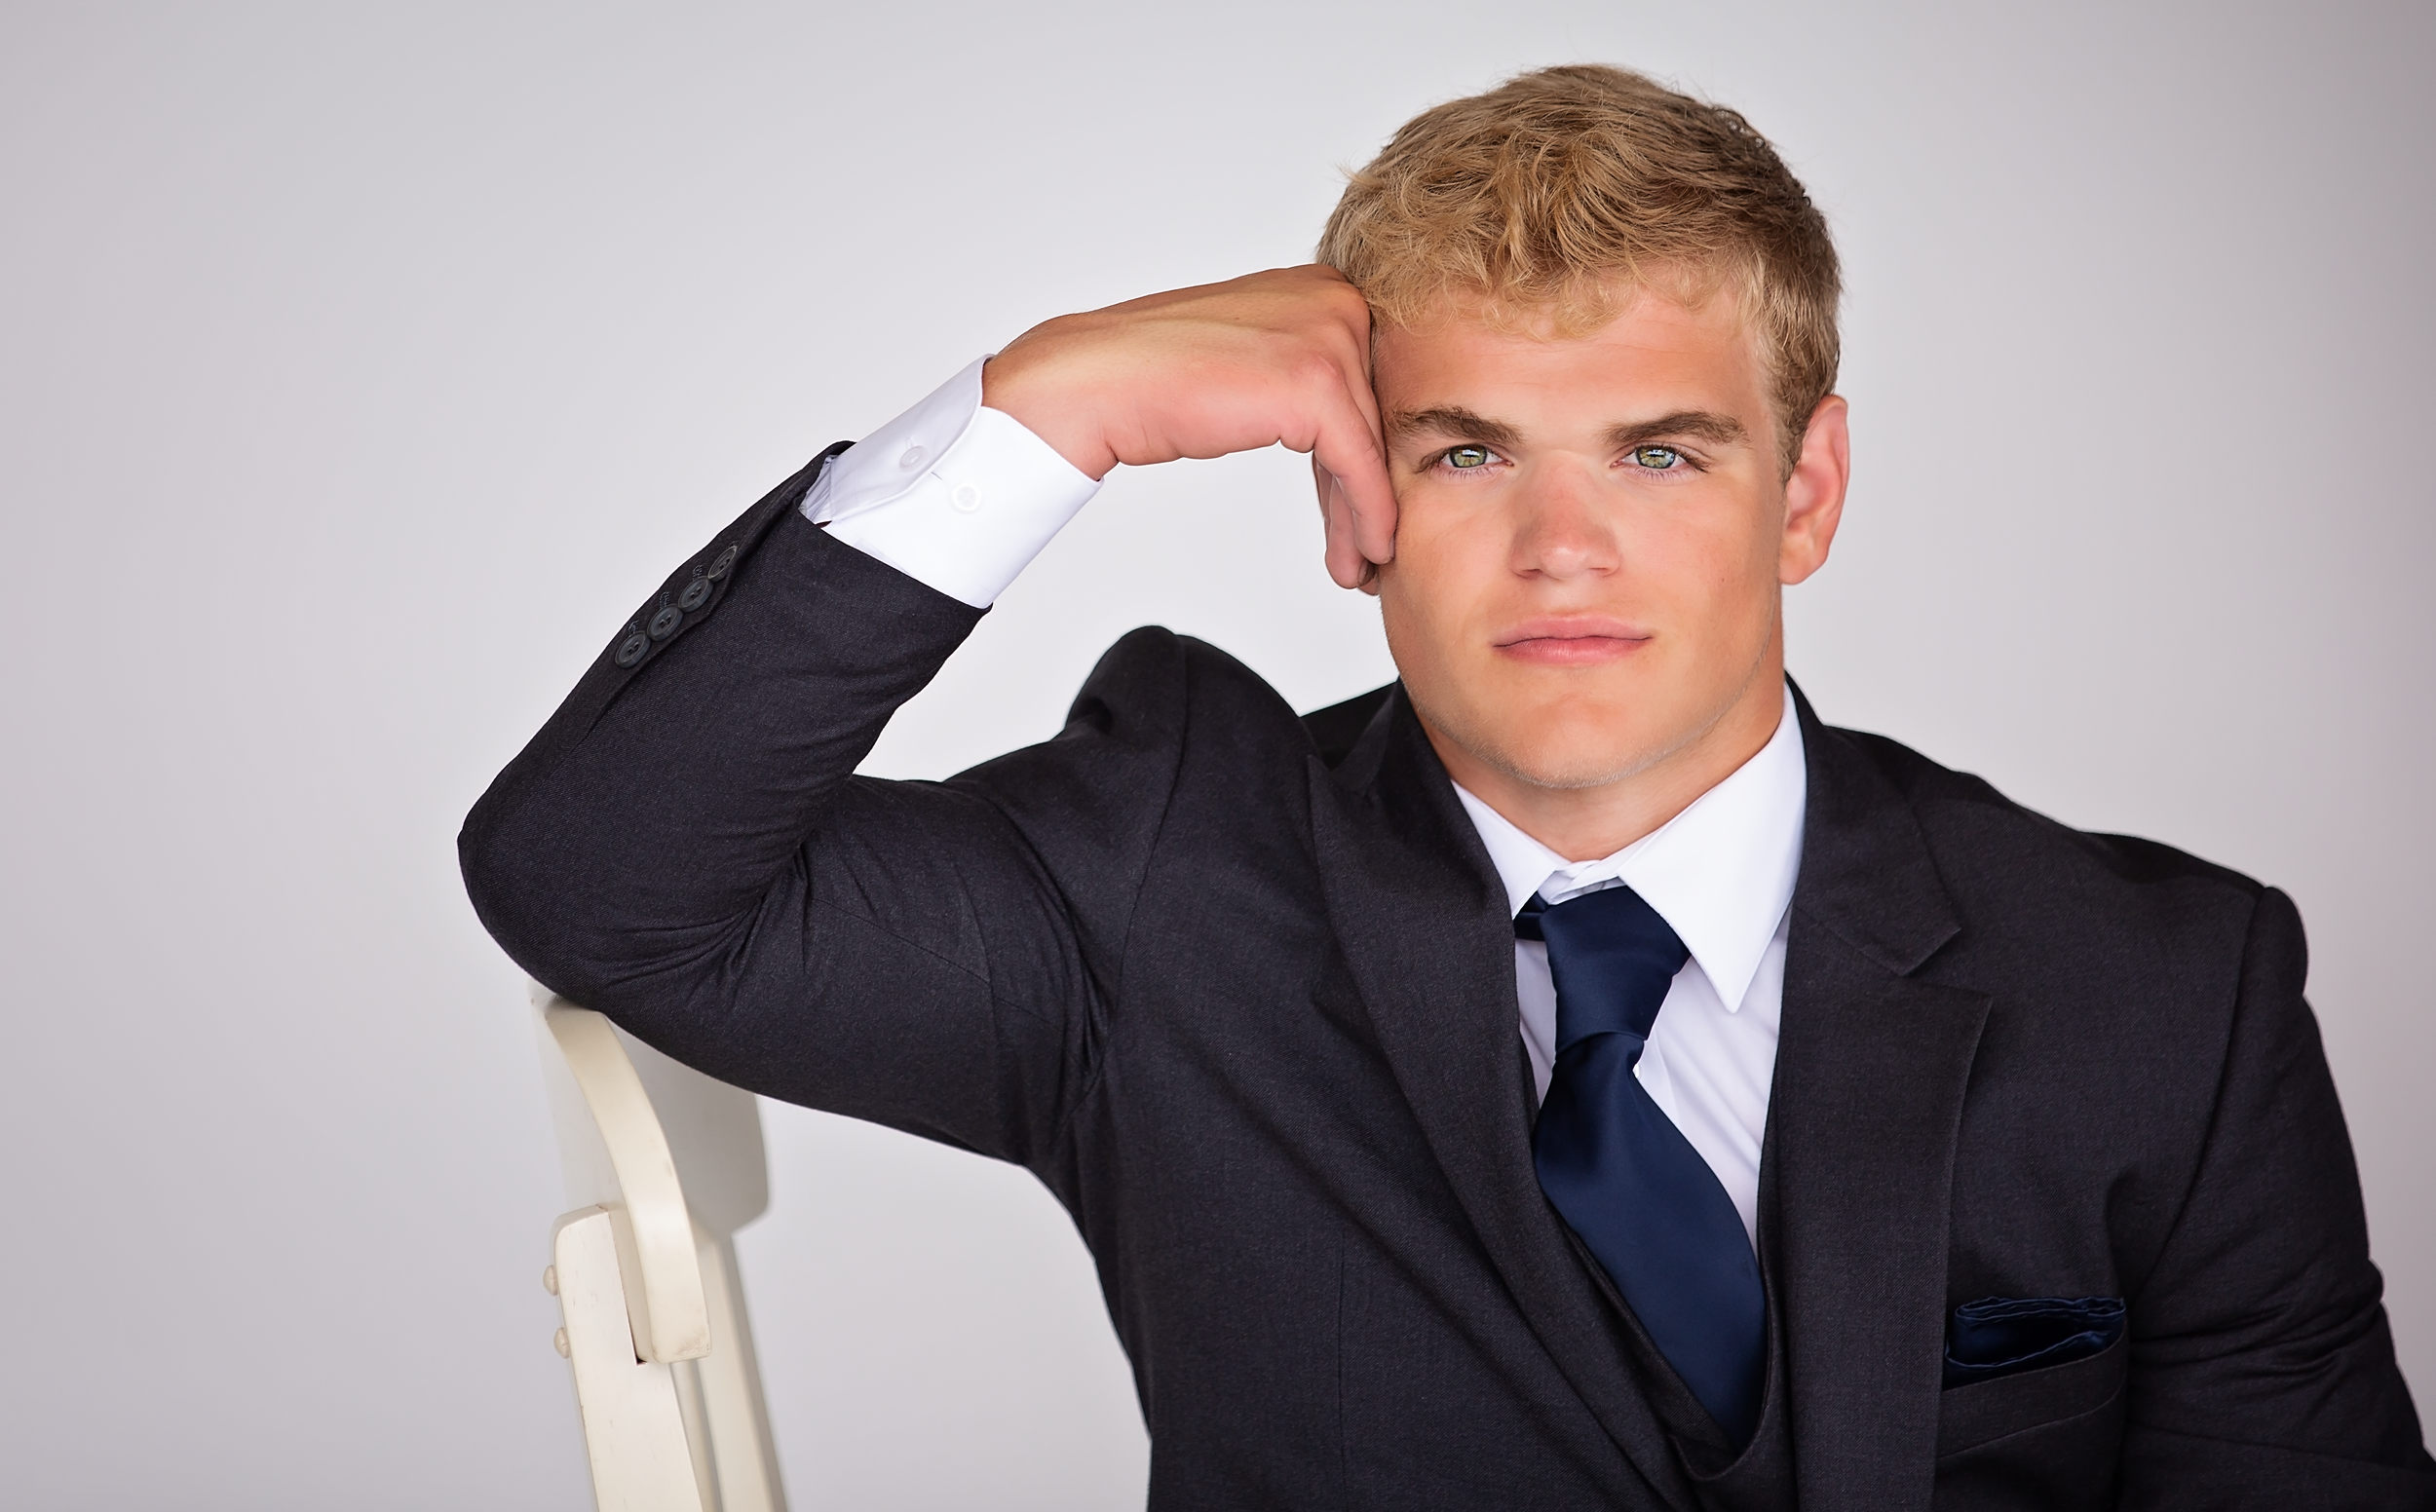 A striking senior photo headshot of a young man wearing a gray suit with a gray vest and navy blue tie with a white shirt sitting resting his head against his hand.